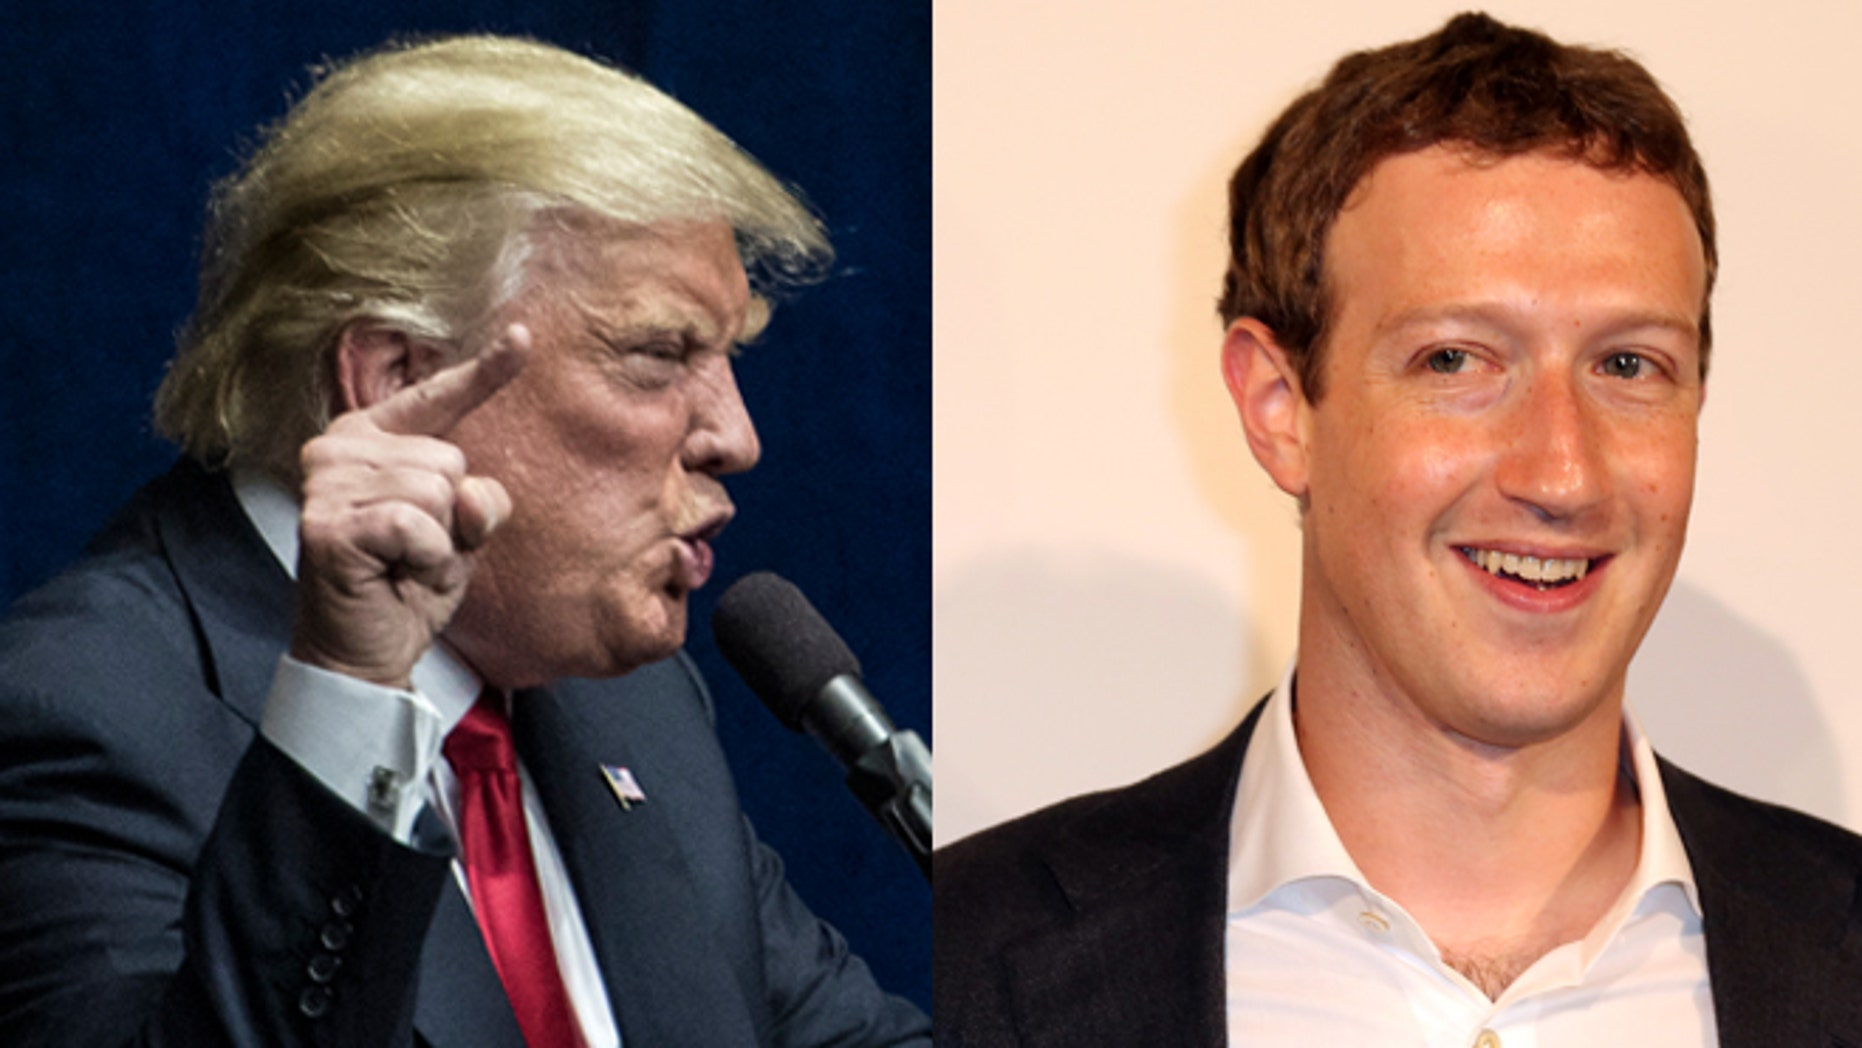 Donald Trump (left) and Mark Zuckerberg. (Photos: Getty Images)